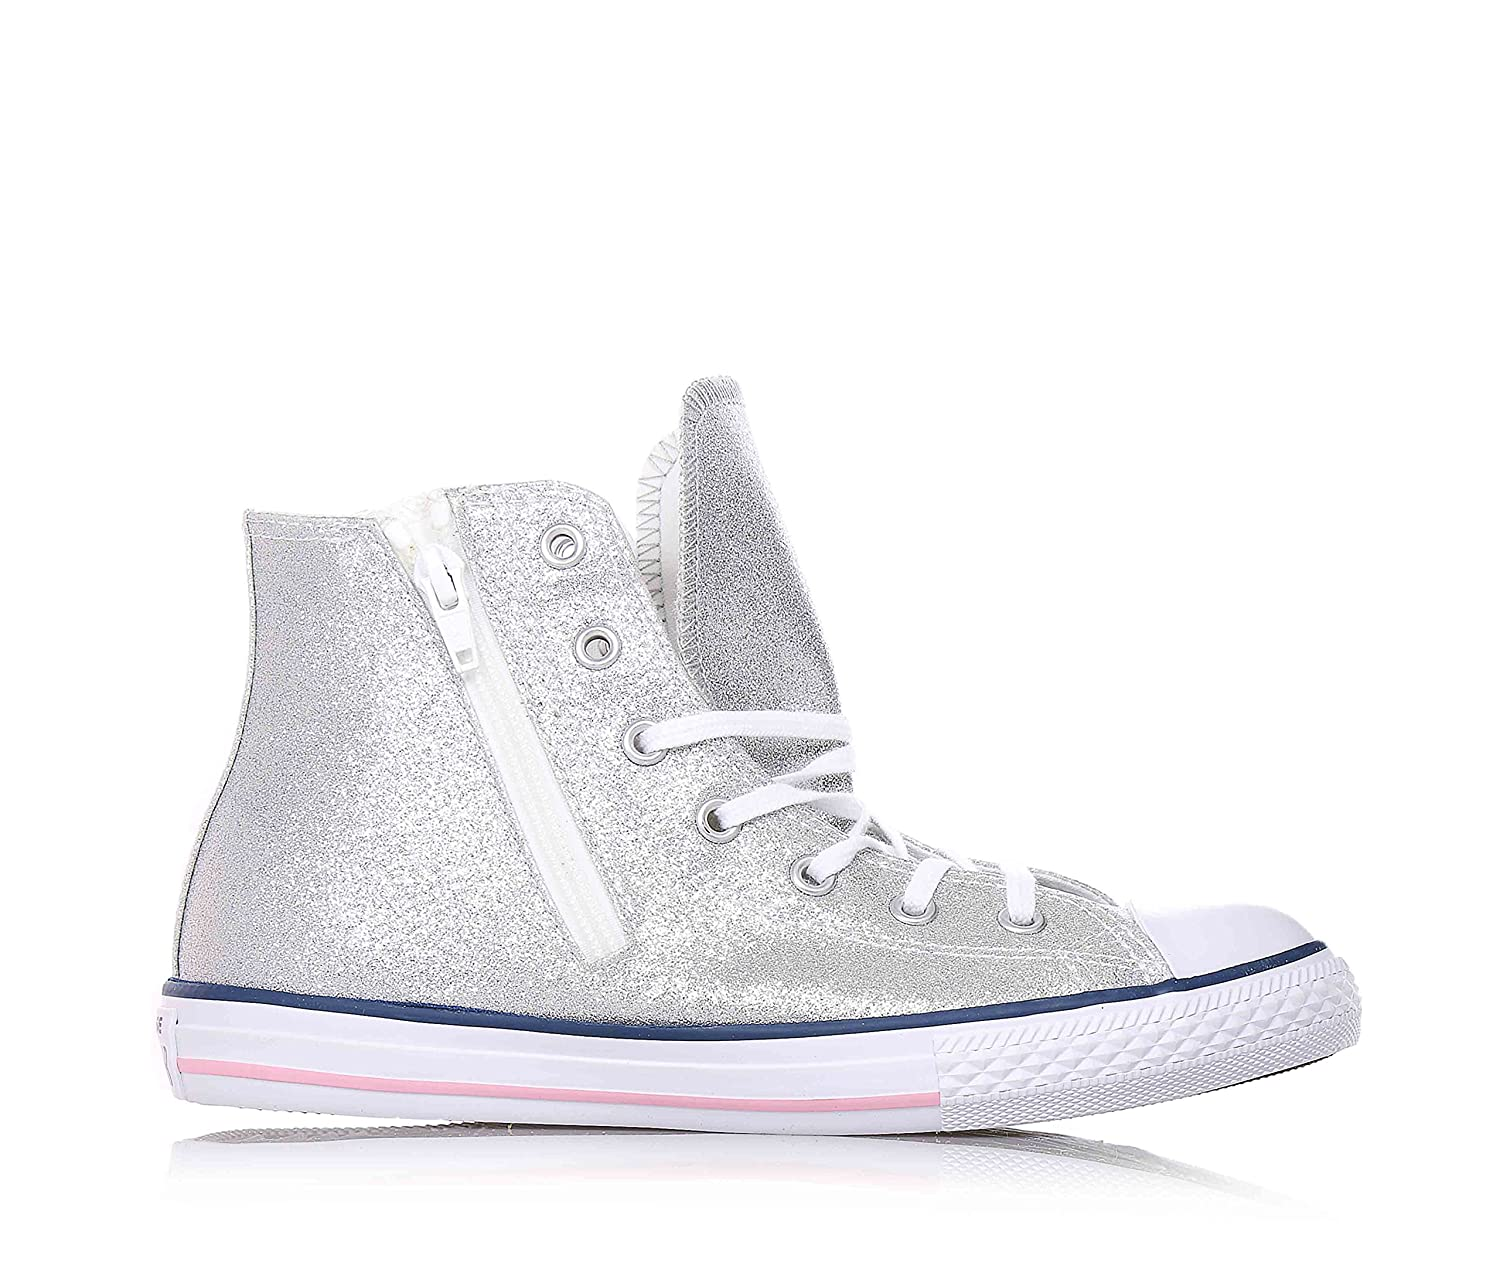 96075450581a Converse 648506C Sneakers Kid  Amazon.co.uk  Shoes   Bags